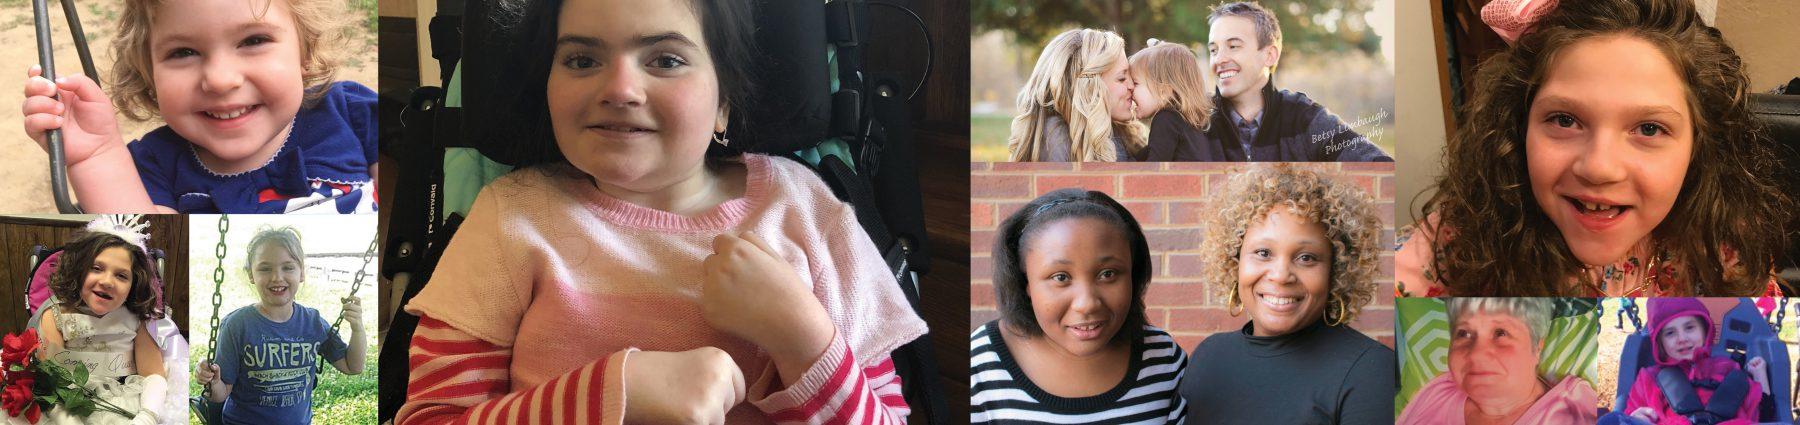 Photos of girls with Rett Syndrome from Tennessee